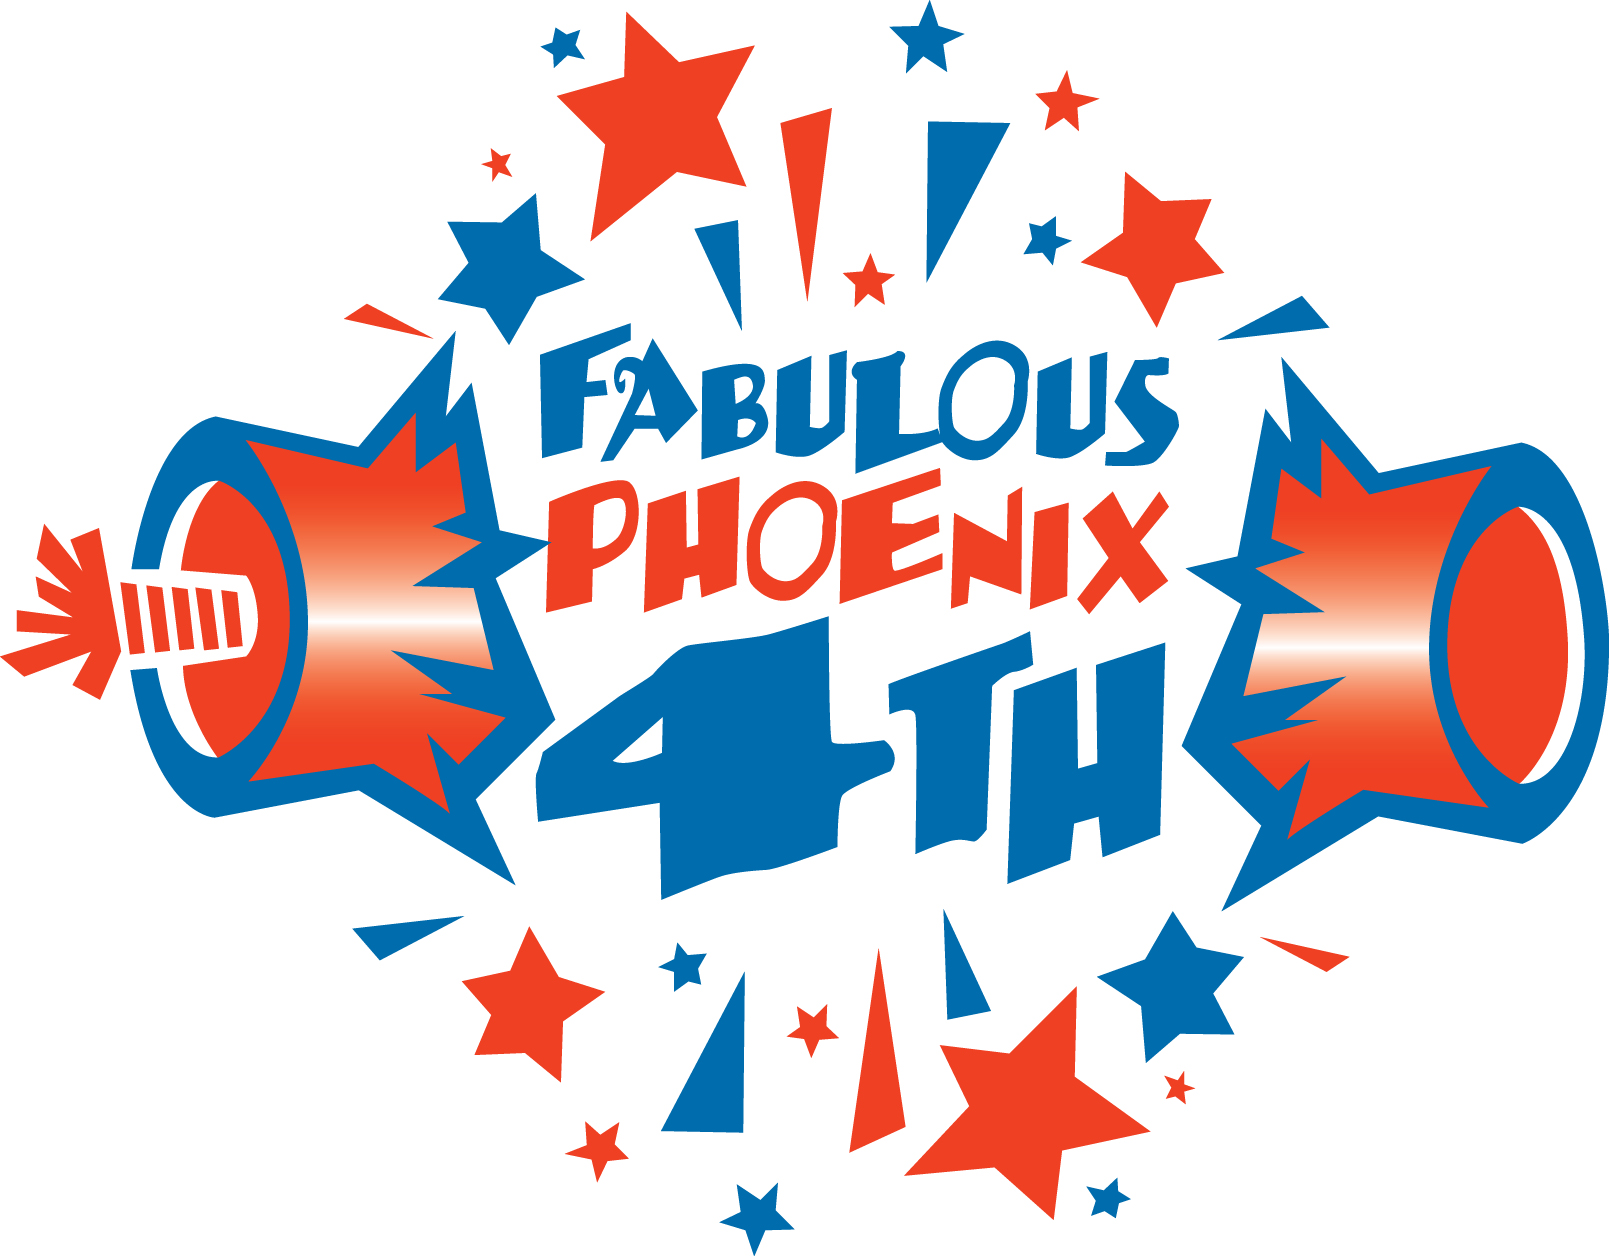 Fabulous Phoenix 4th Logo